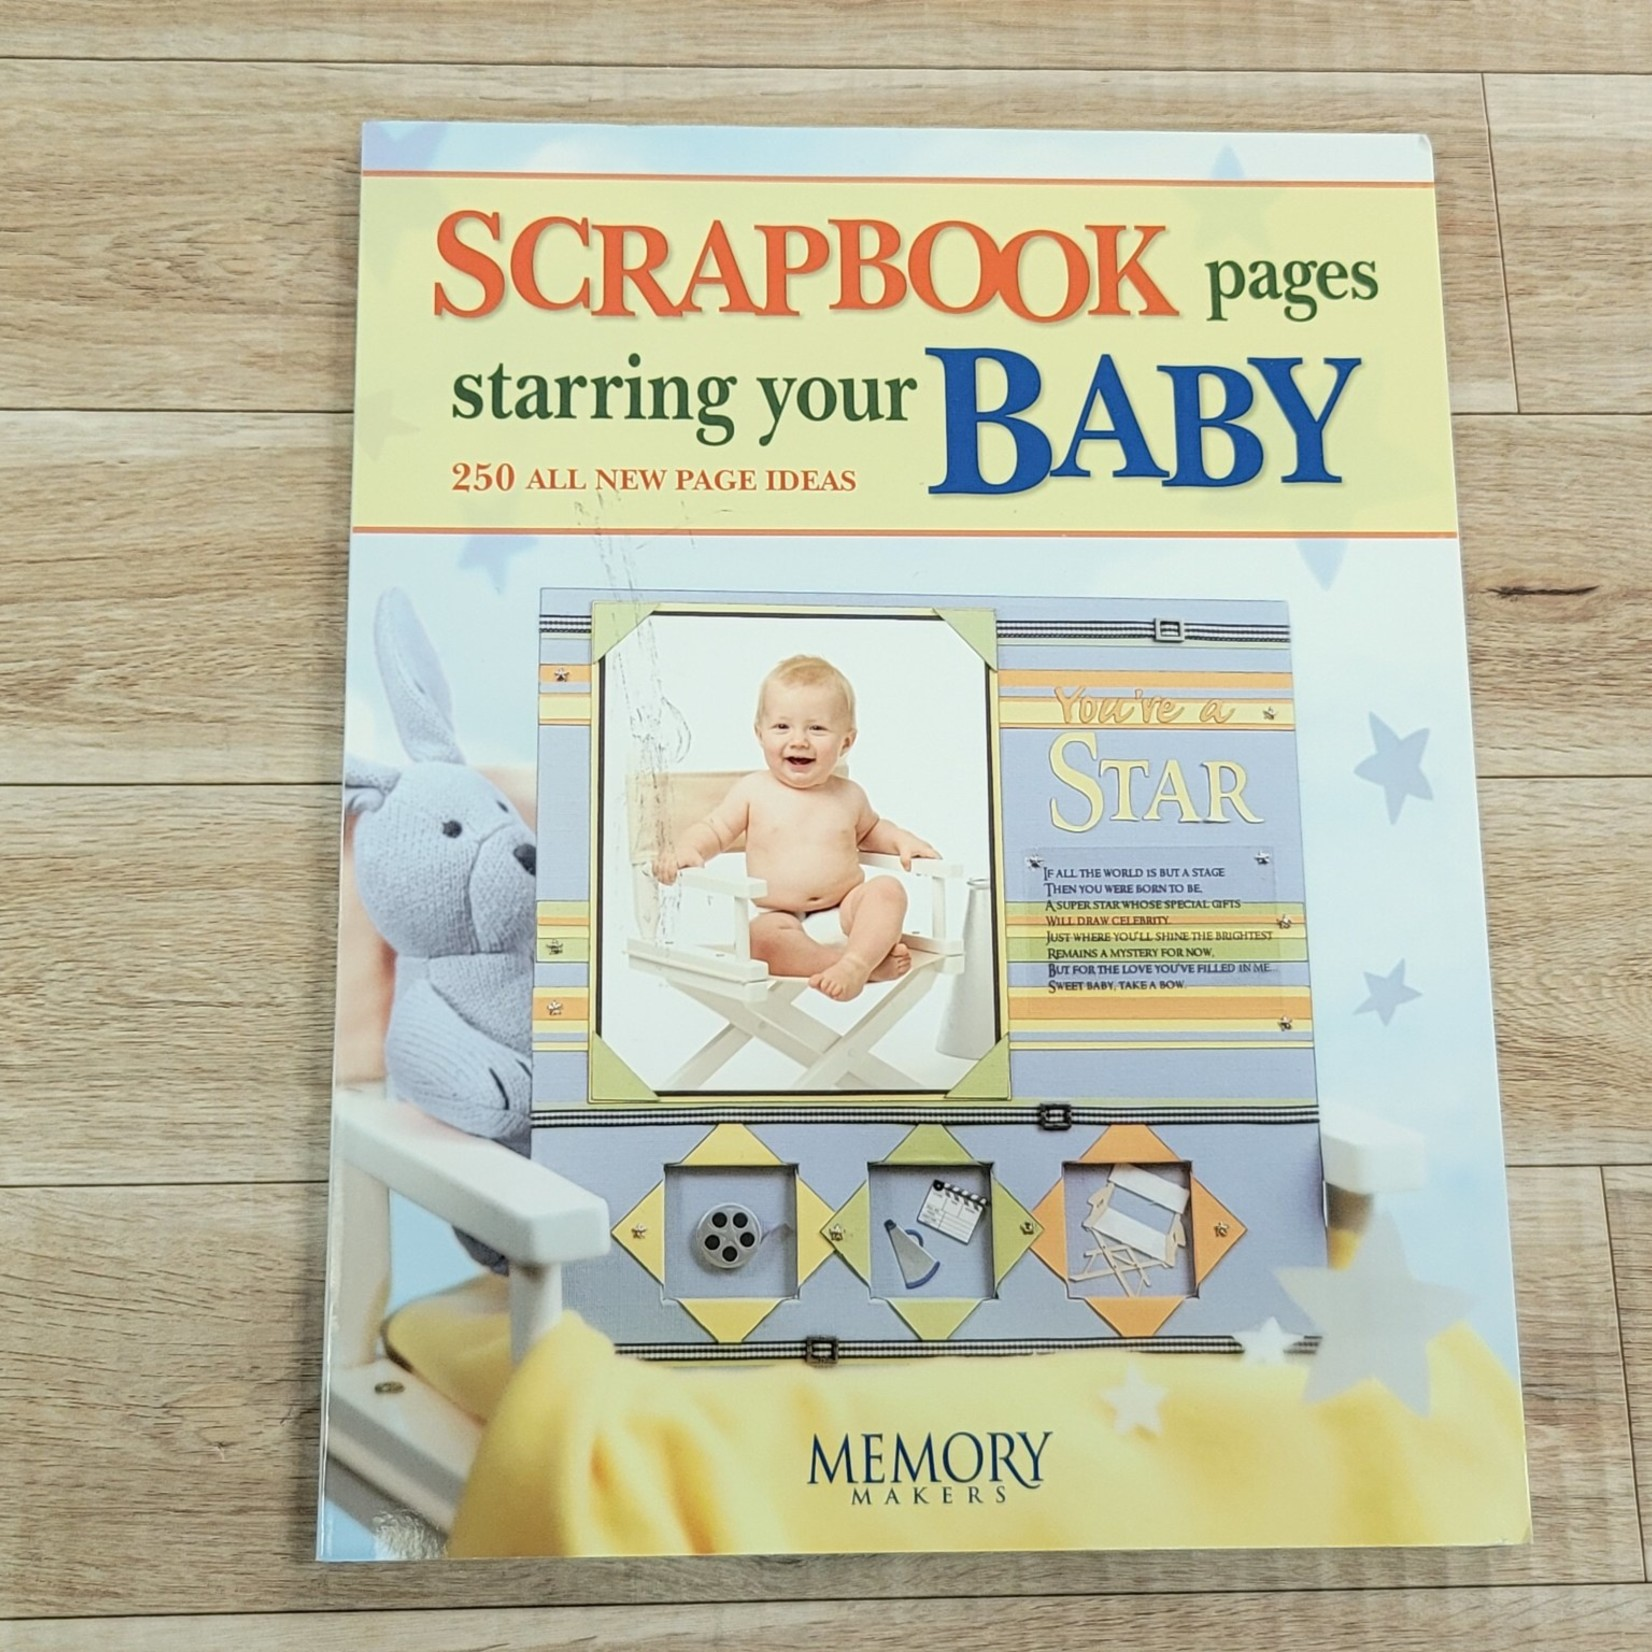 Scrapbooking Books - Scrapbook pages starring your baby